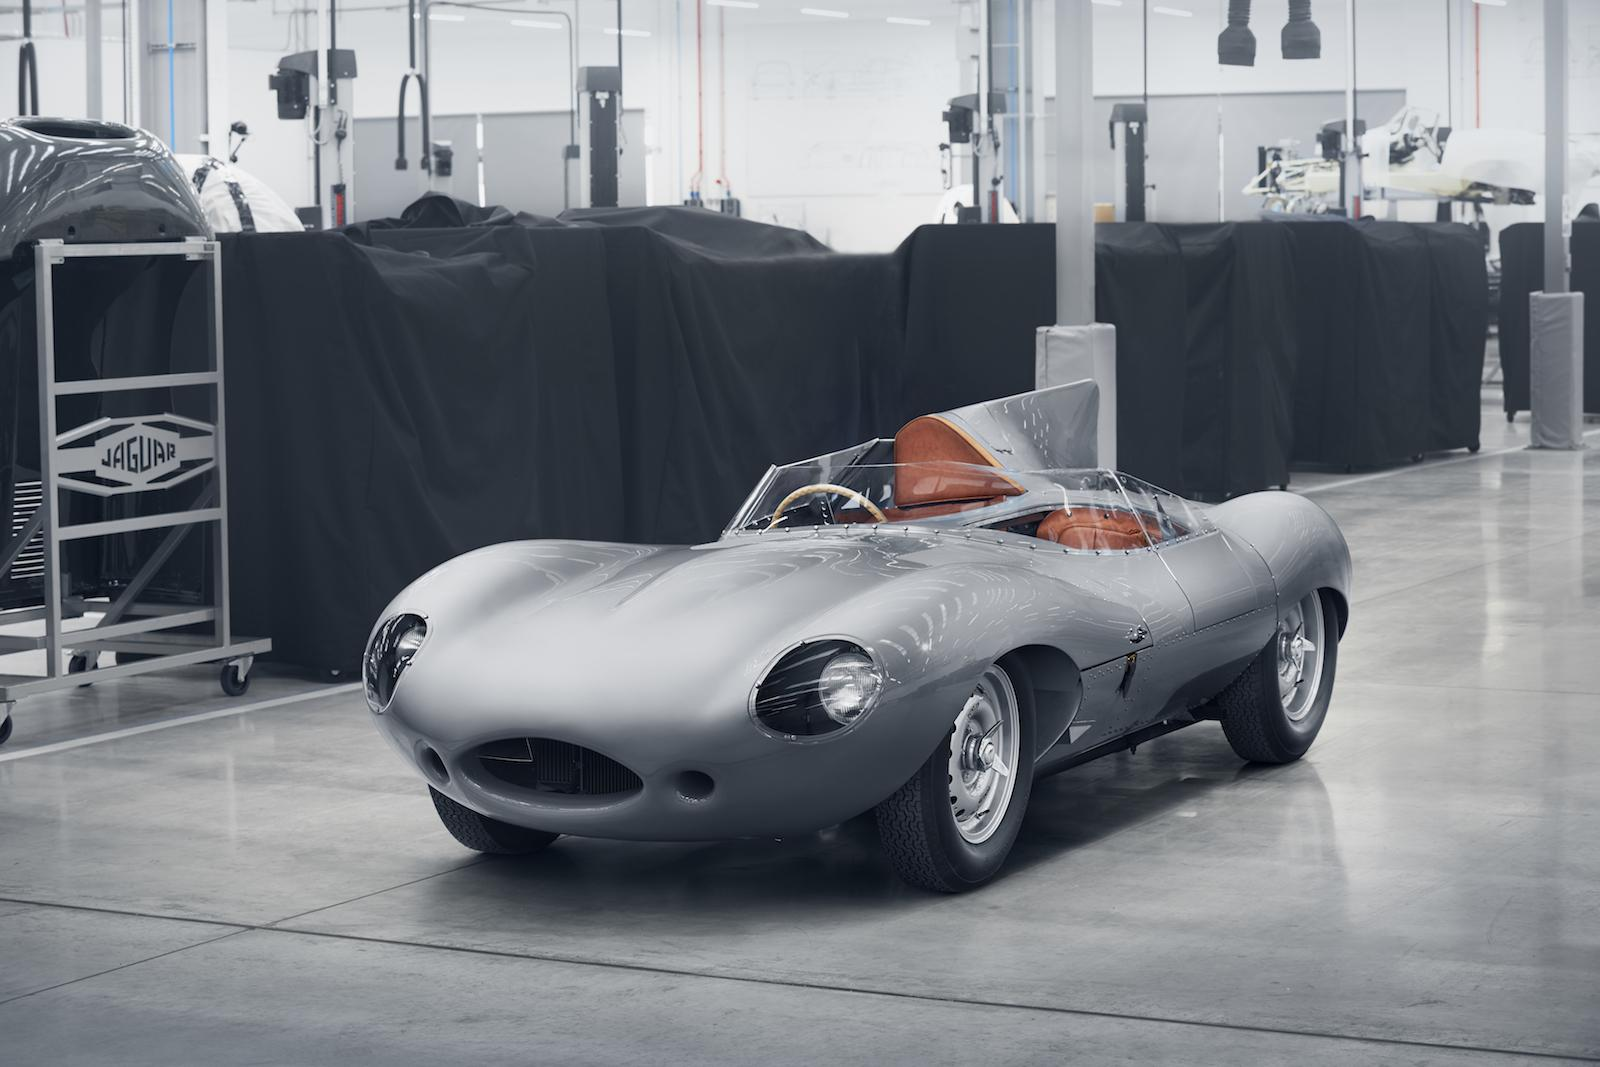 Jaguar brings back the legendary D-type!